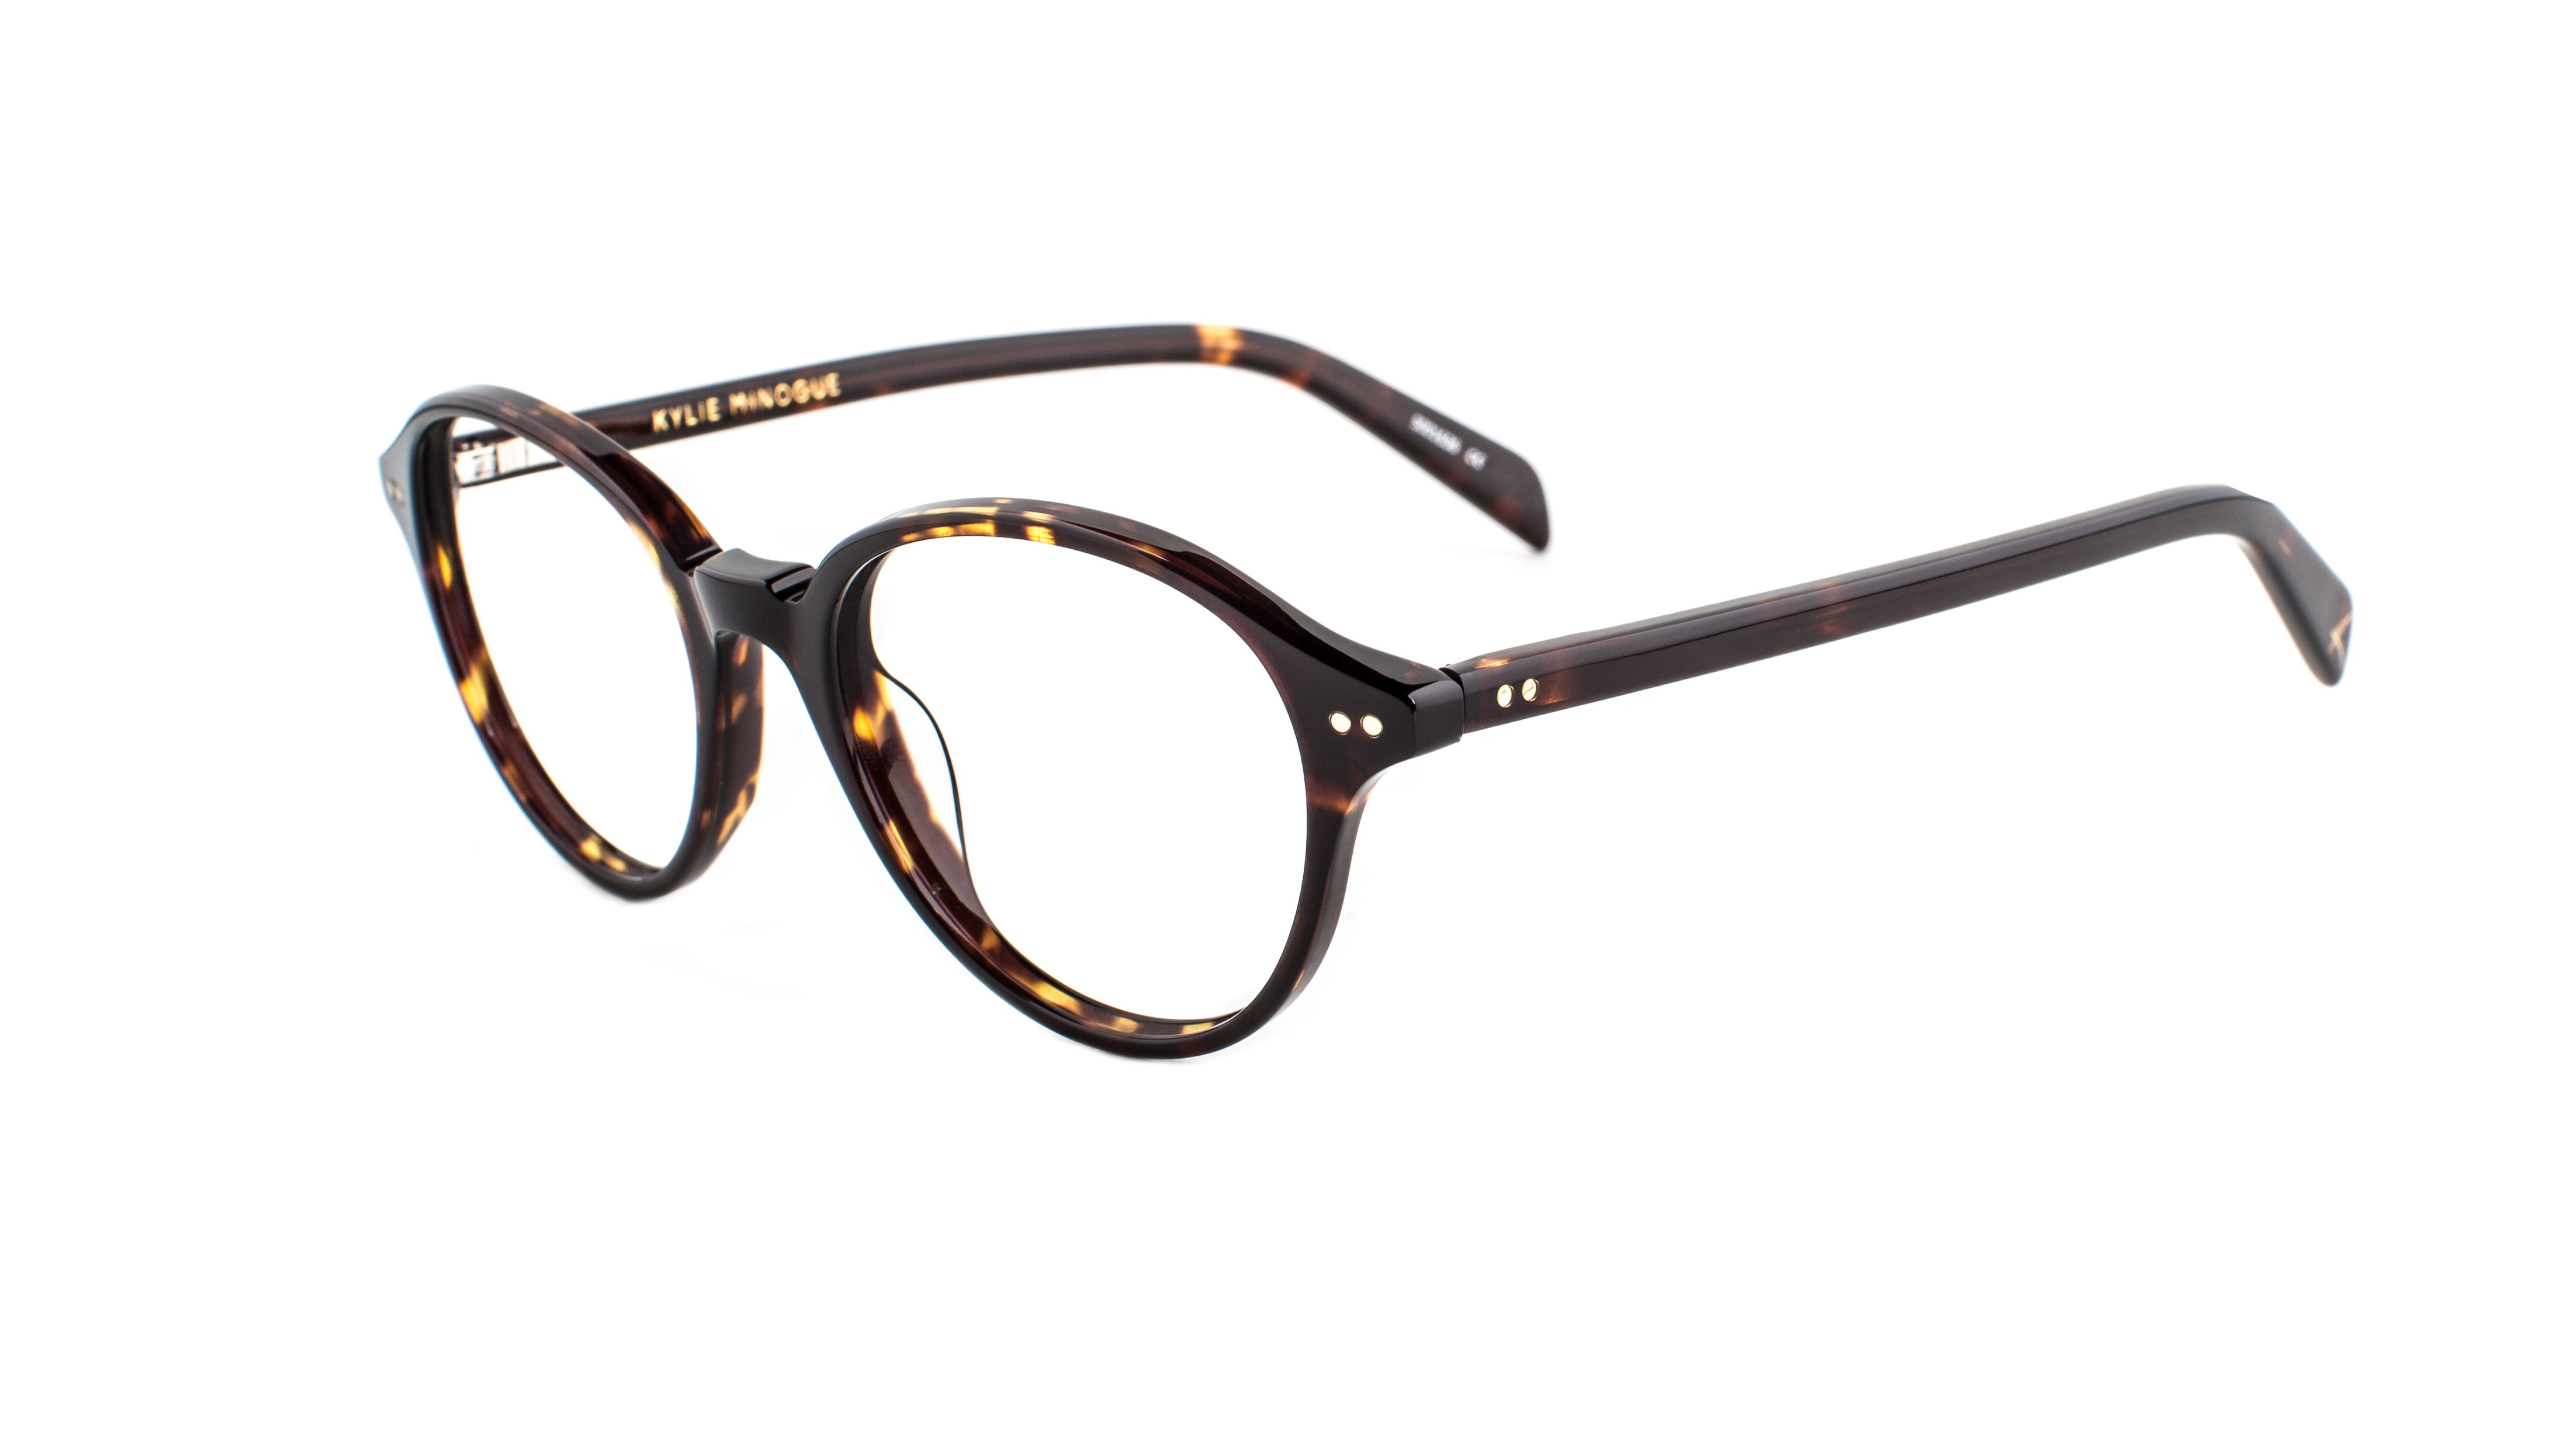 Kylie Minogue Eyewear_Kylie 06_SKU 30520189_RRP 2 pairs from $299 (2)